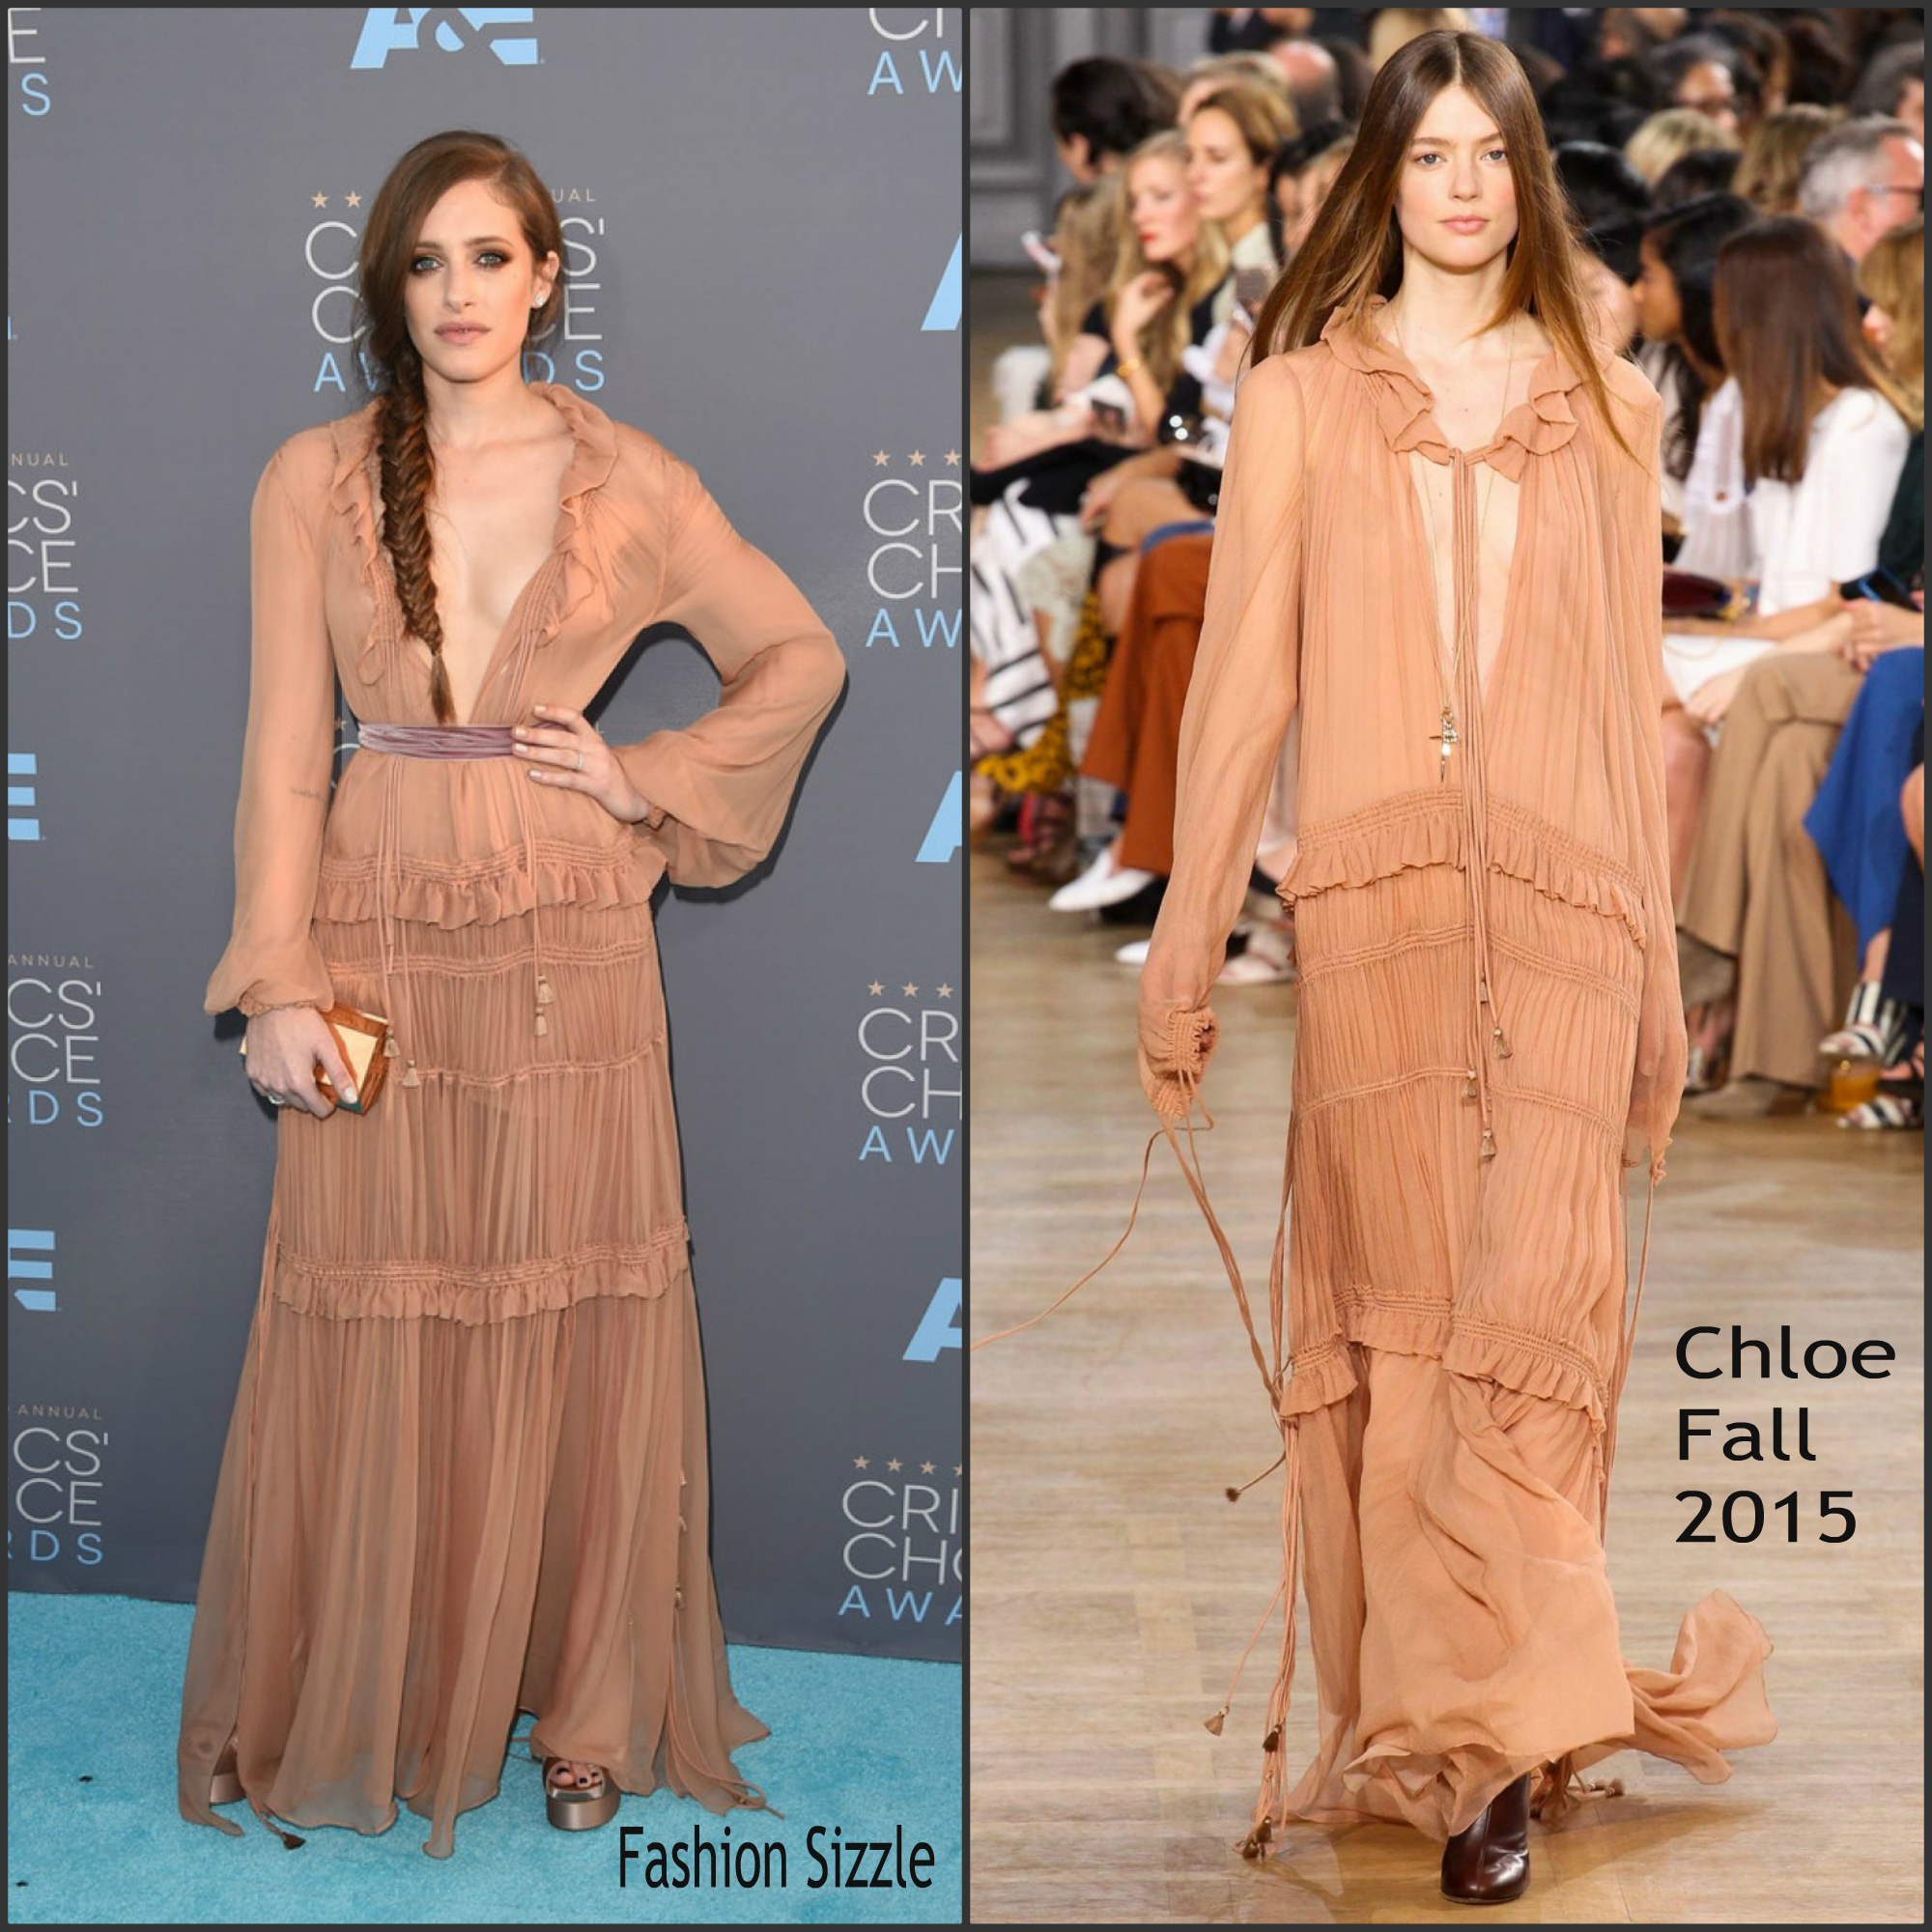 carly-chaikin-in-chloe-2016-critics-choice-awards